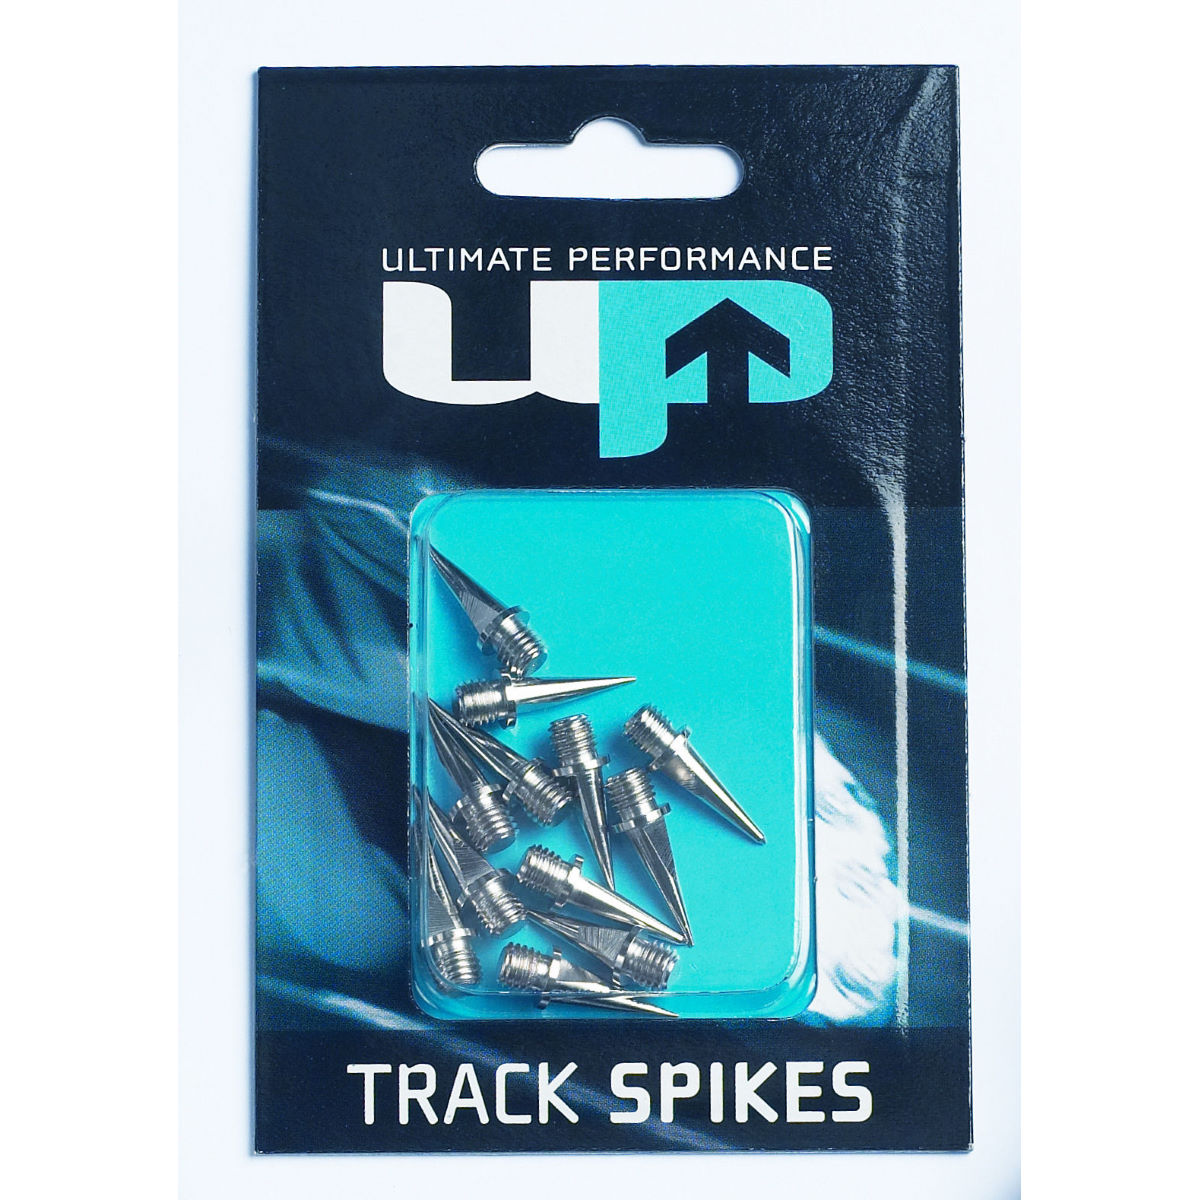 Ultimate Performance Track Spikes - 15mm Grey  Shoe Spares